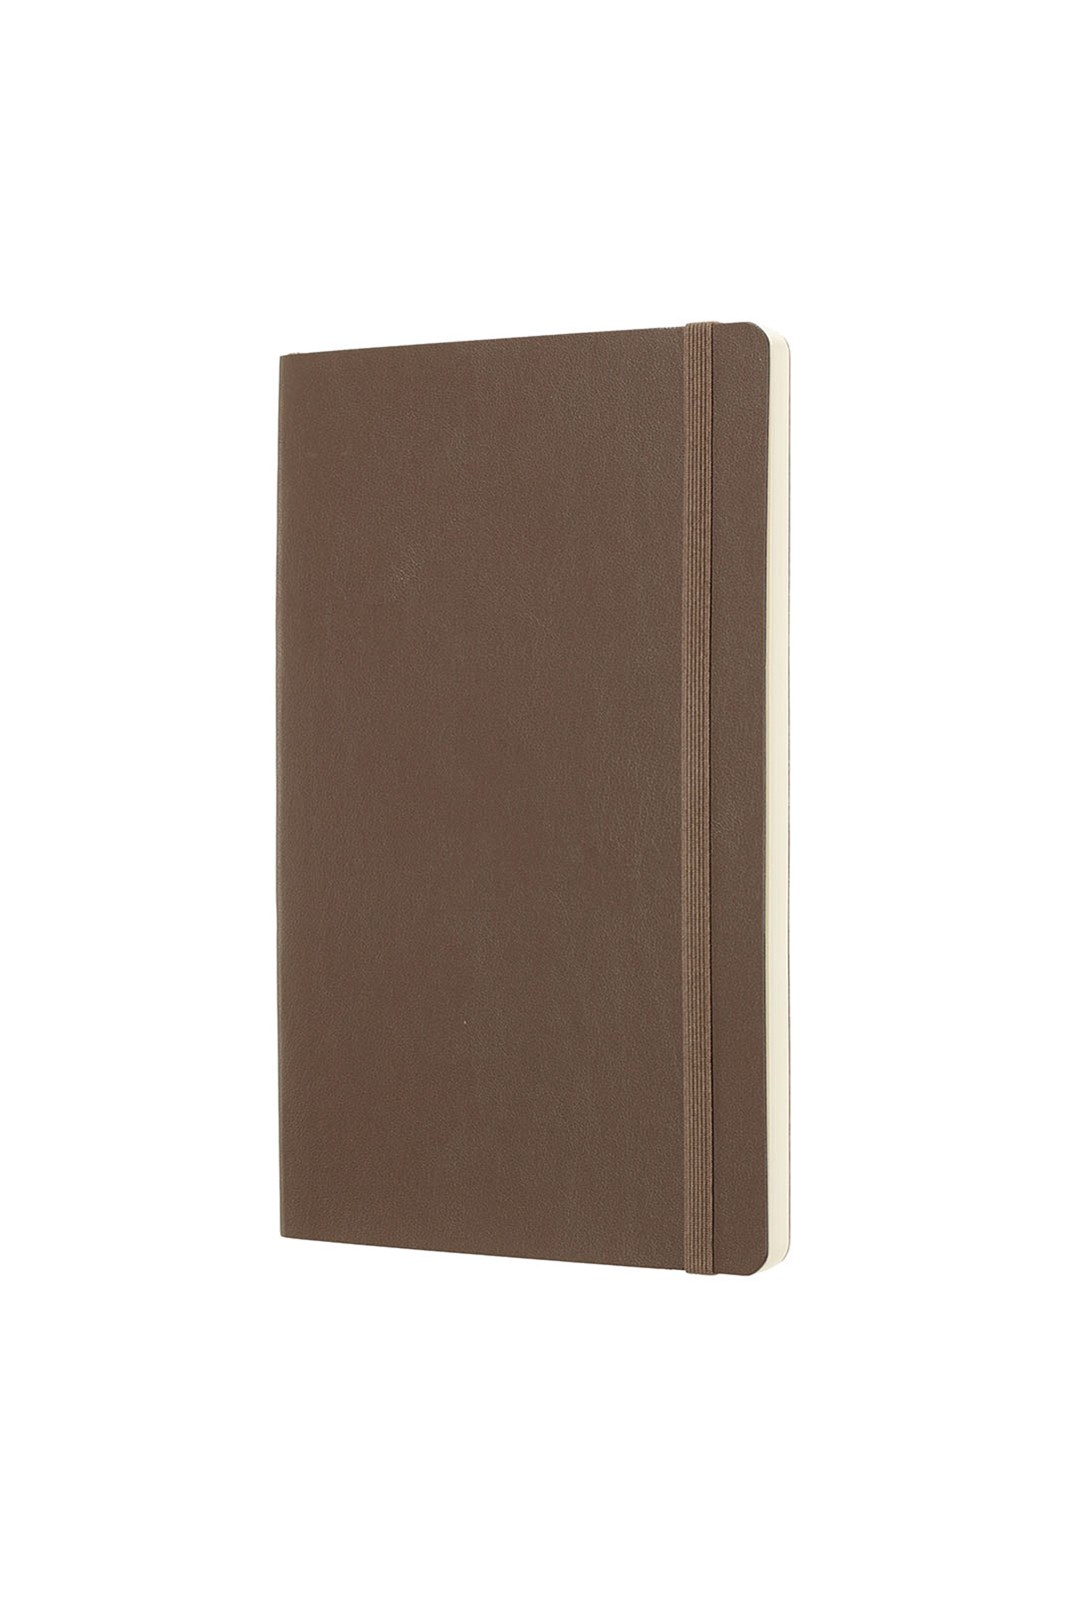 Moleskine - Classic Soft Cover Notebook - Plain - Large - Earth Brown